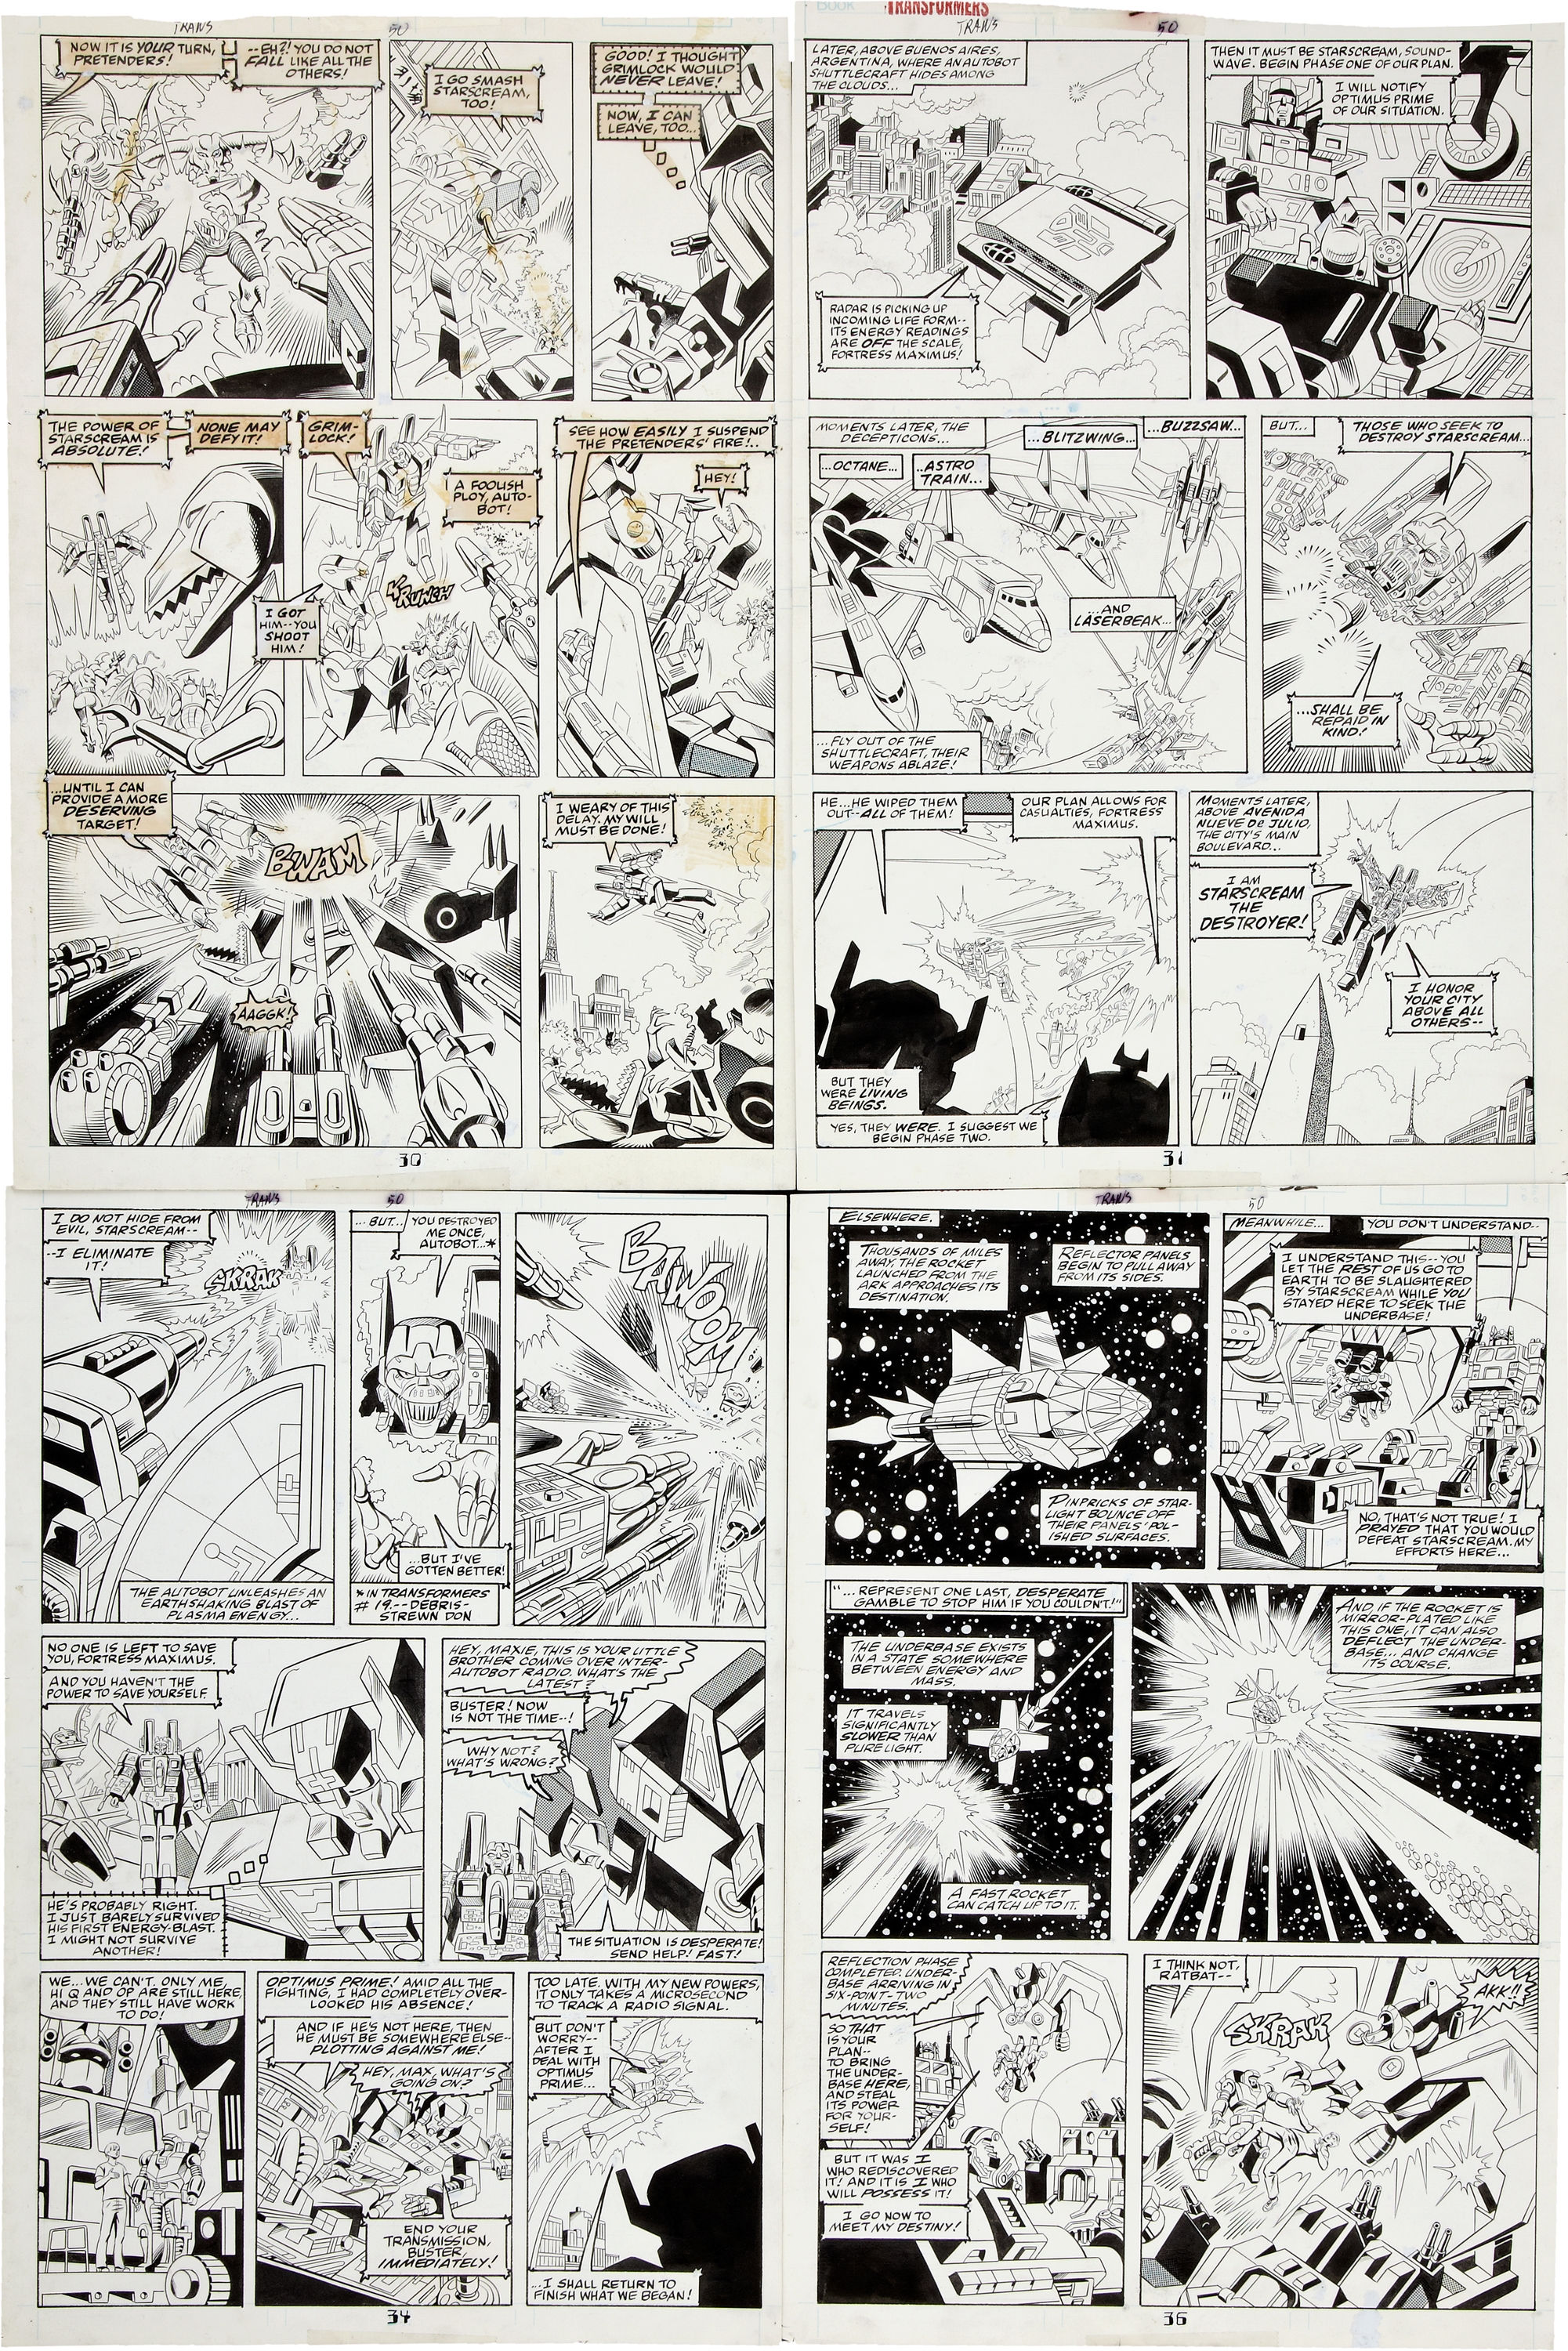 Be Nelson Yomtov! (Colorists, Tackle an Original Transformers Marvel Comics Page!)-jose-delbo-transformers-50-page-05.jpg